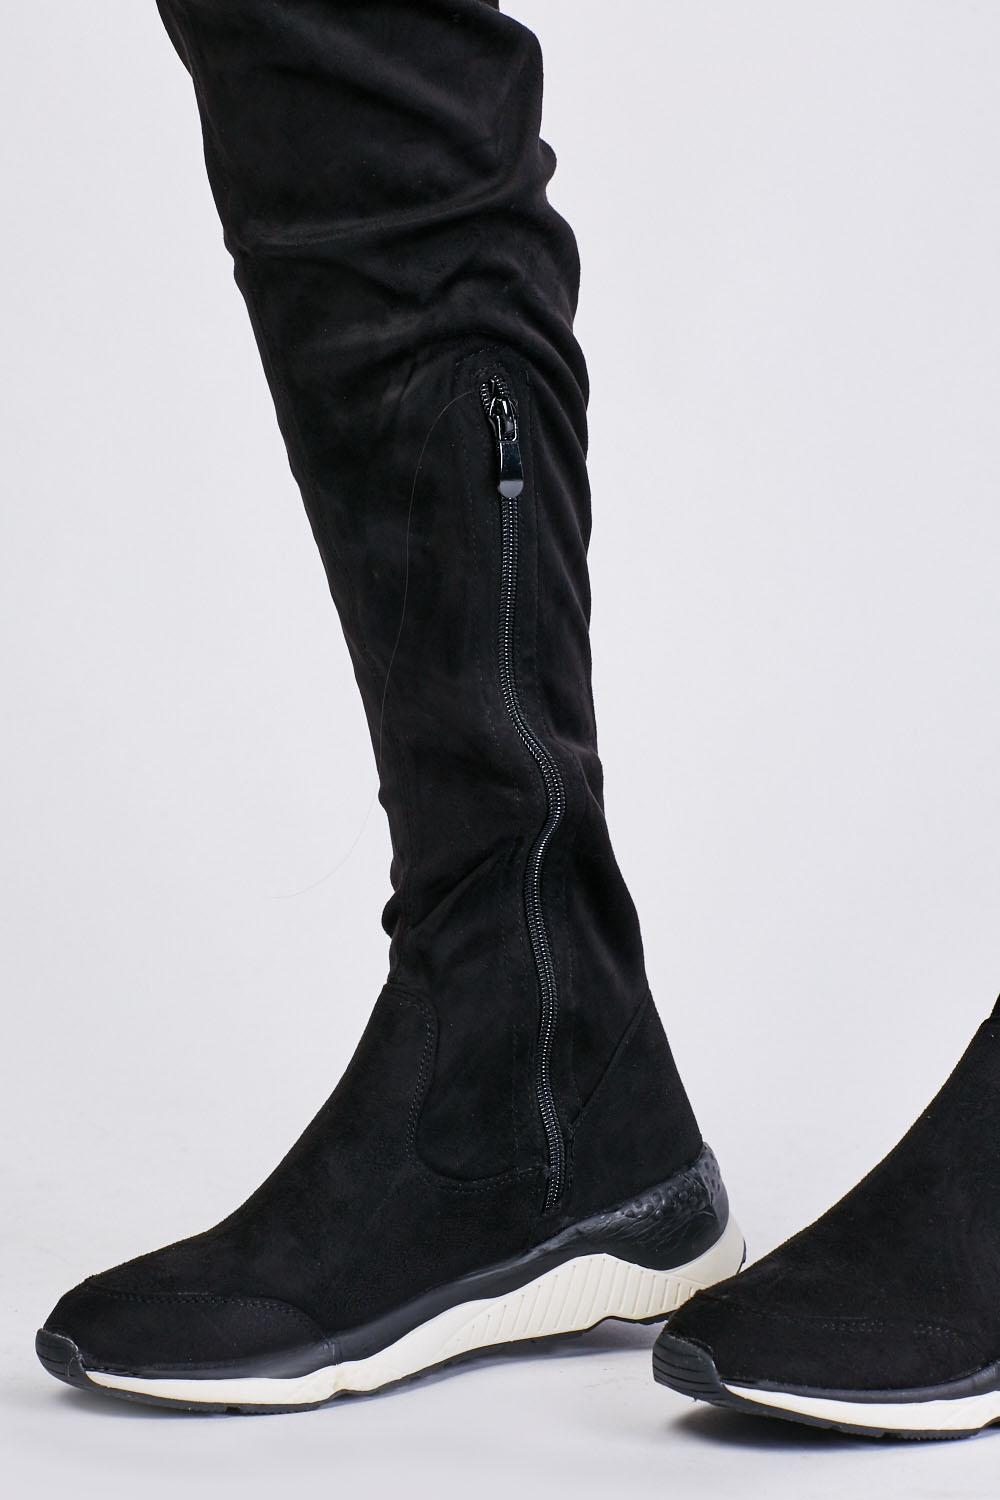 Suedette Knee High Trainers Boots - Just $6